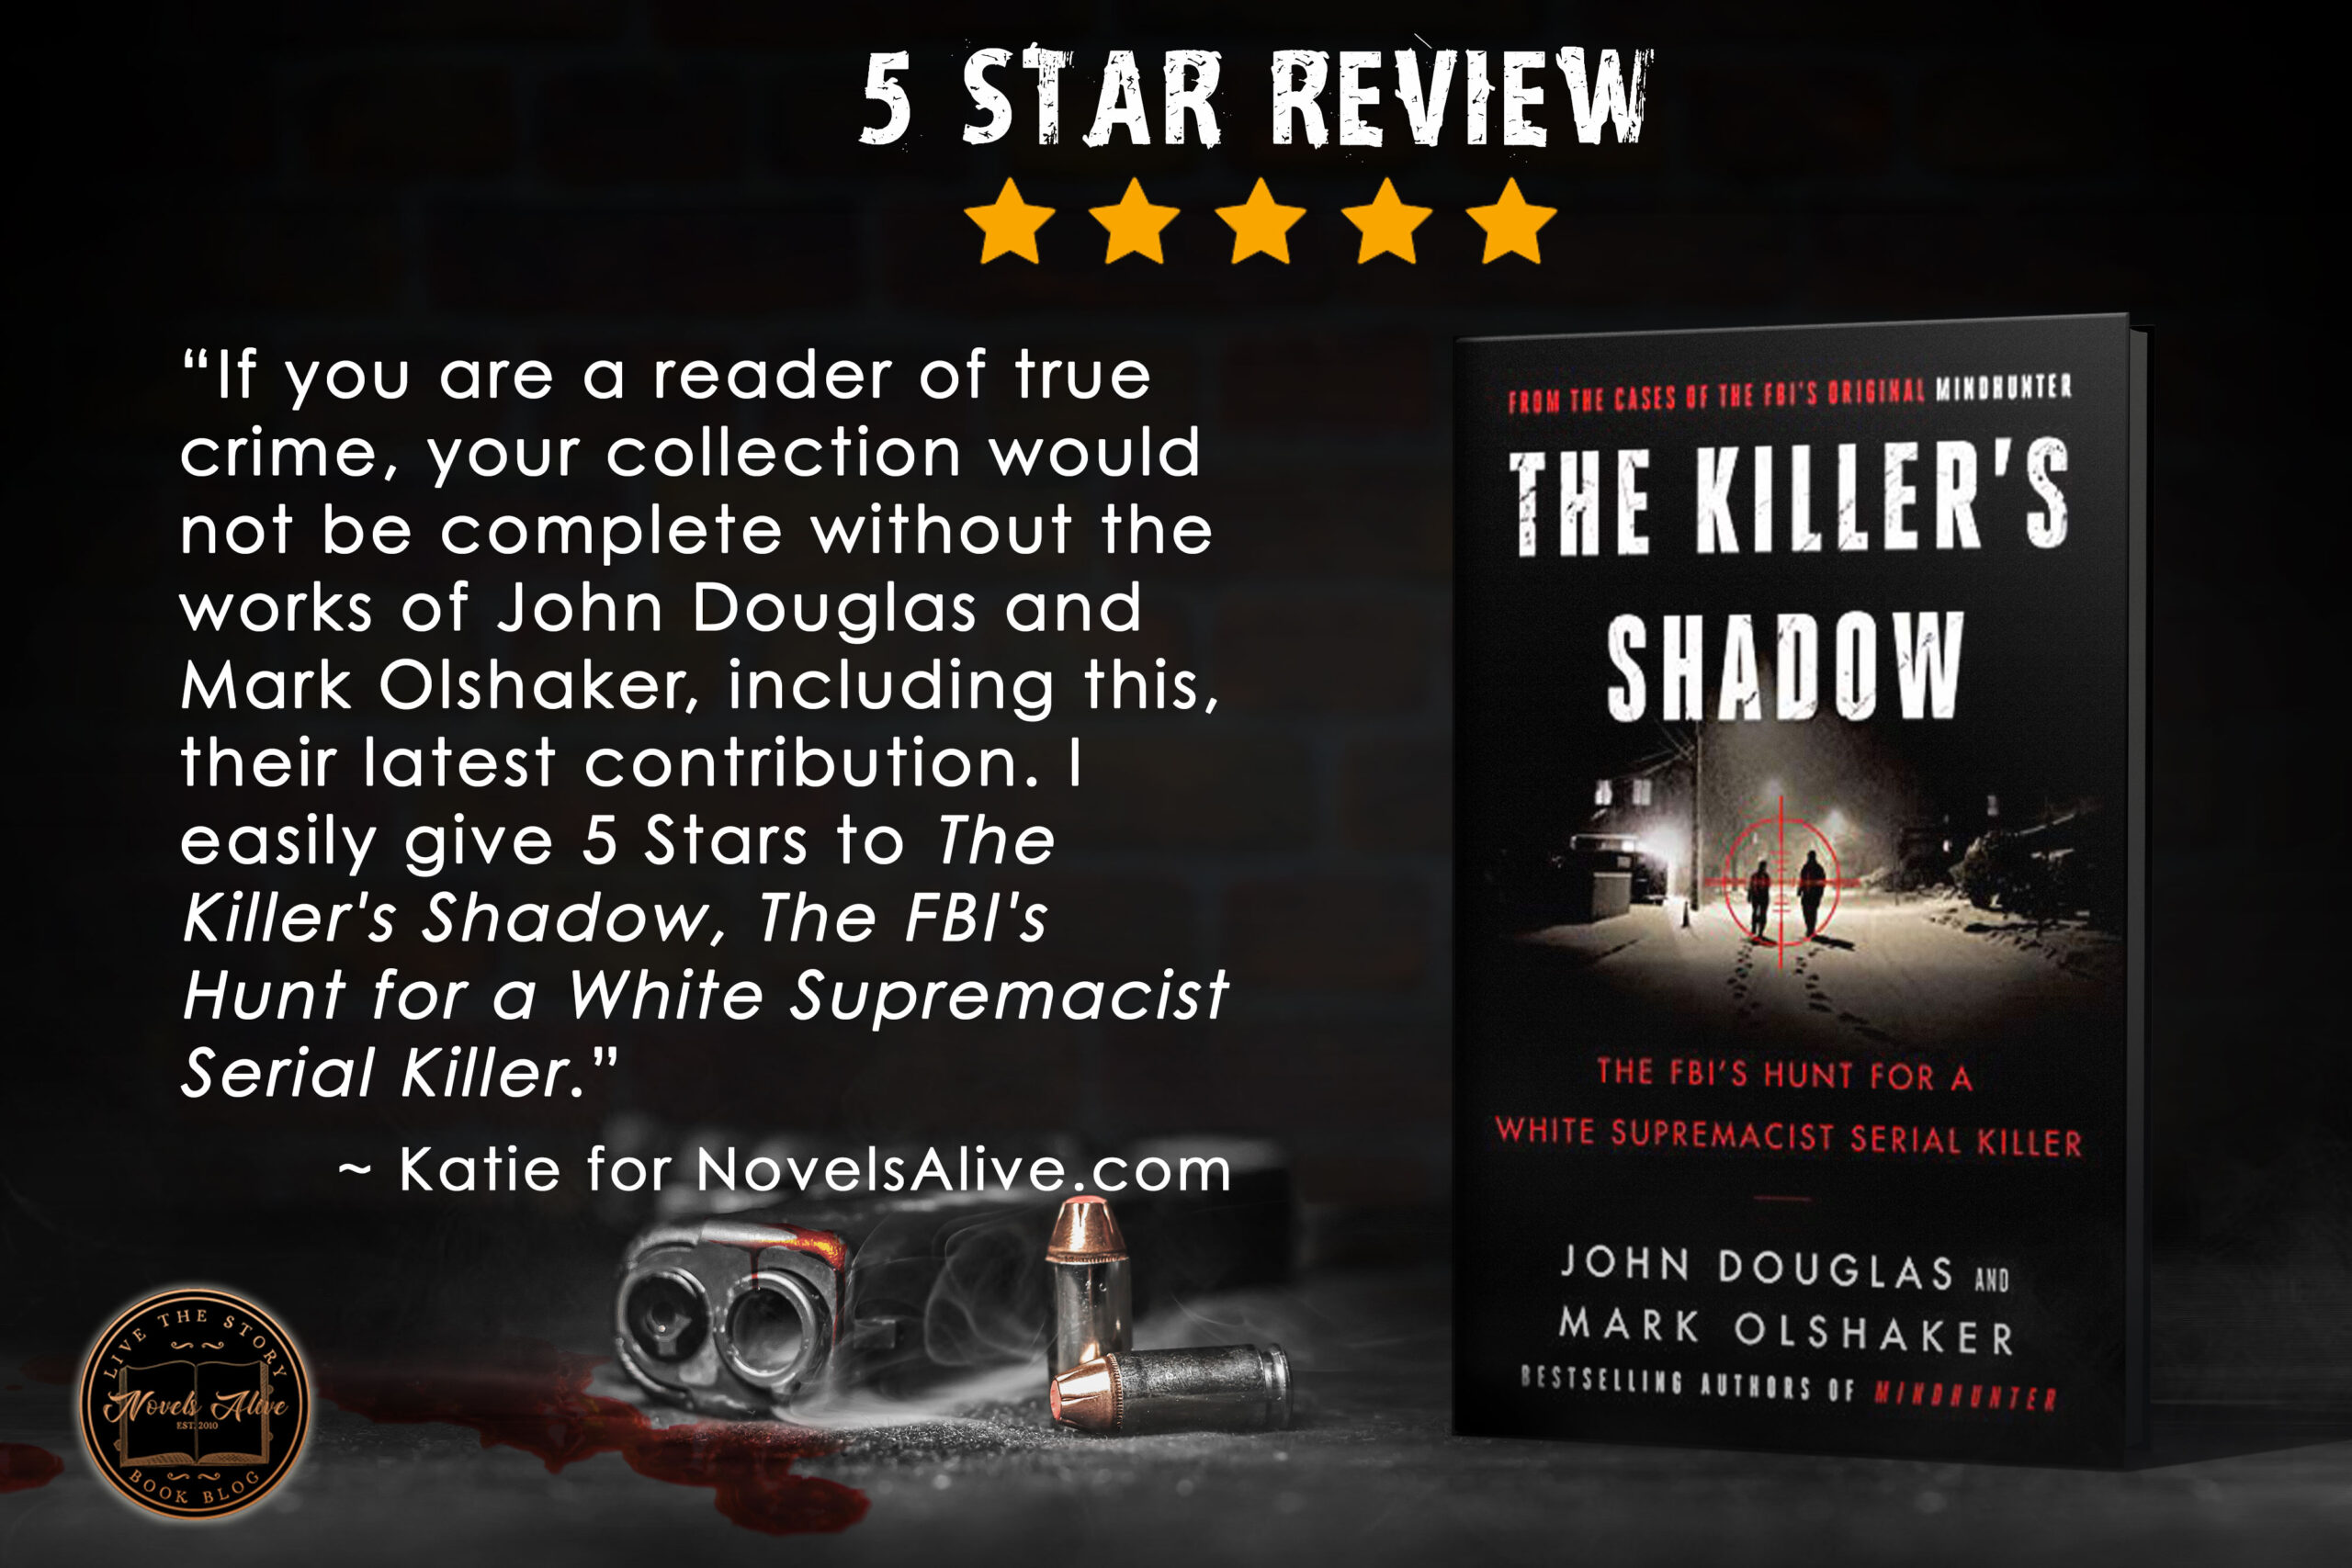 The Killers Shadow Review